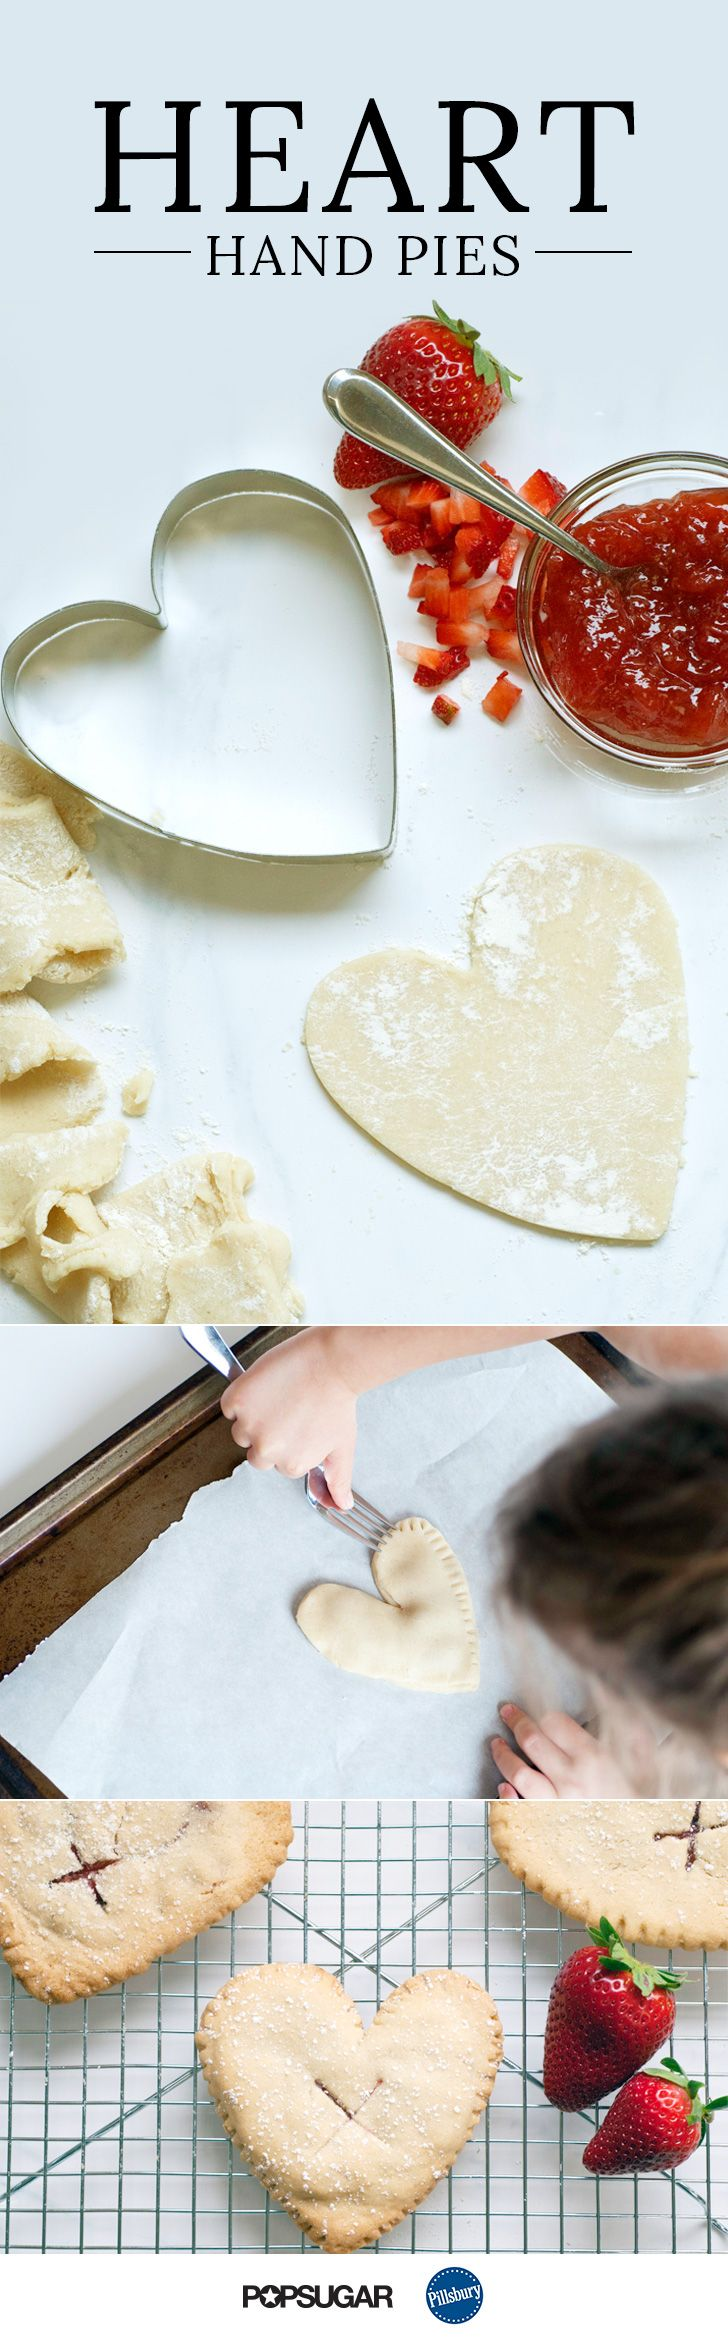 """These Strawberry Heart Hand Pies Are the Sweetest Way to Say """"I Love You"""""""